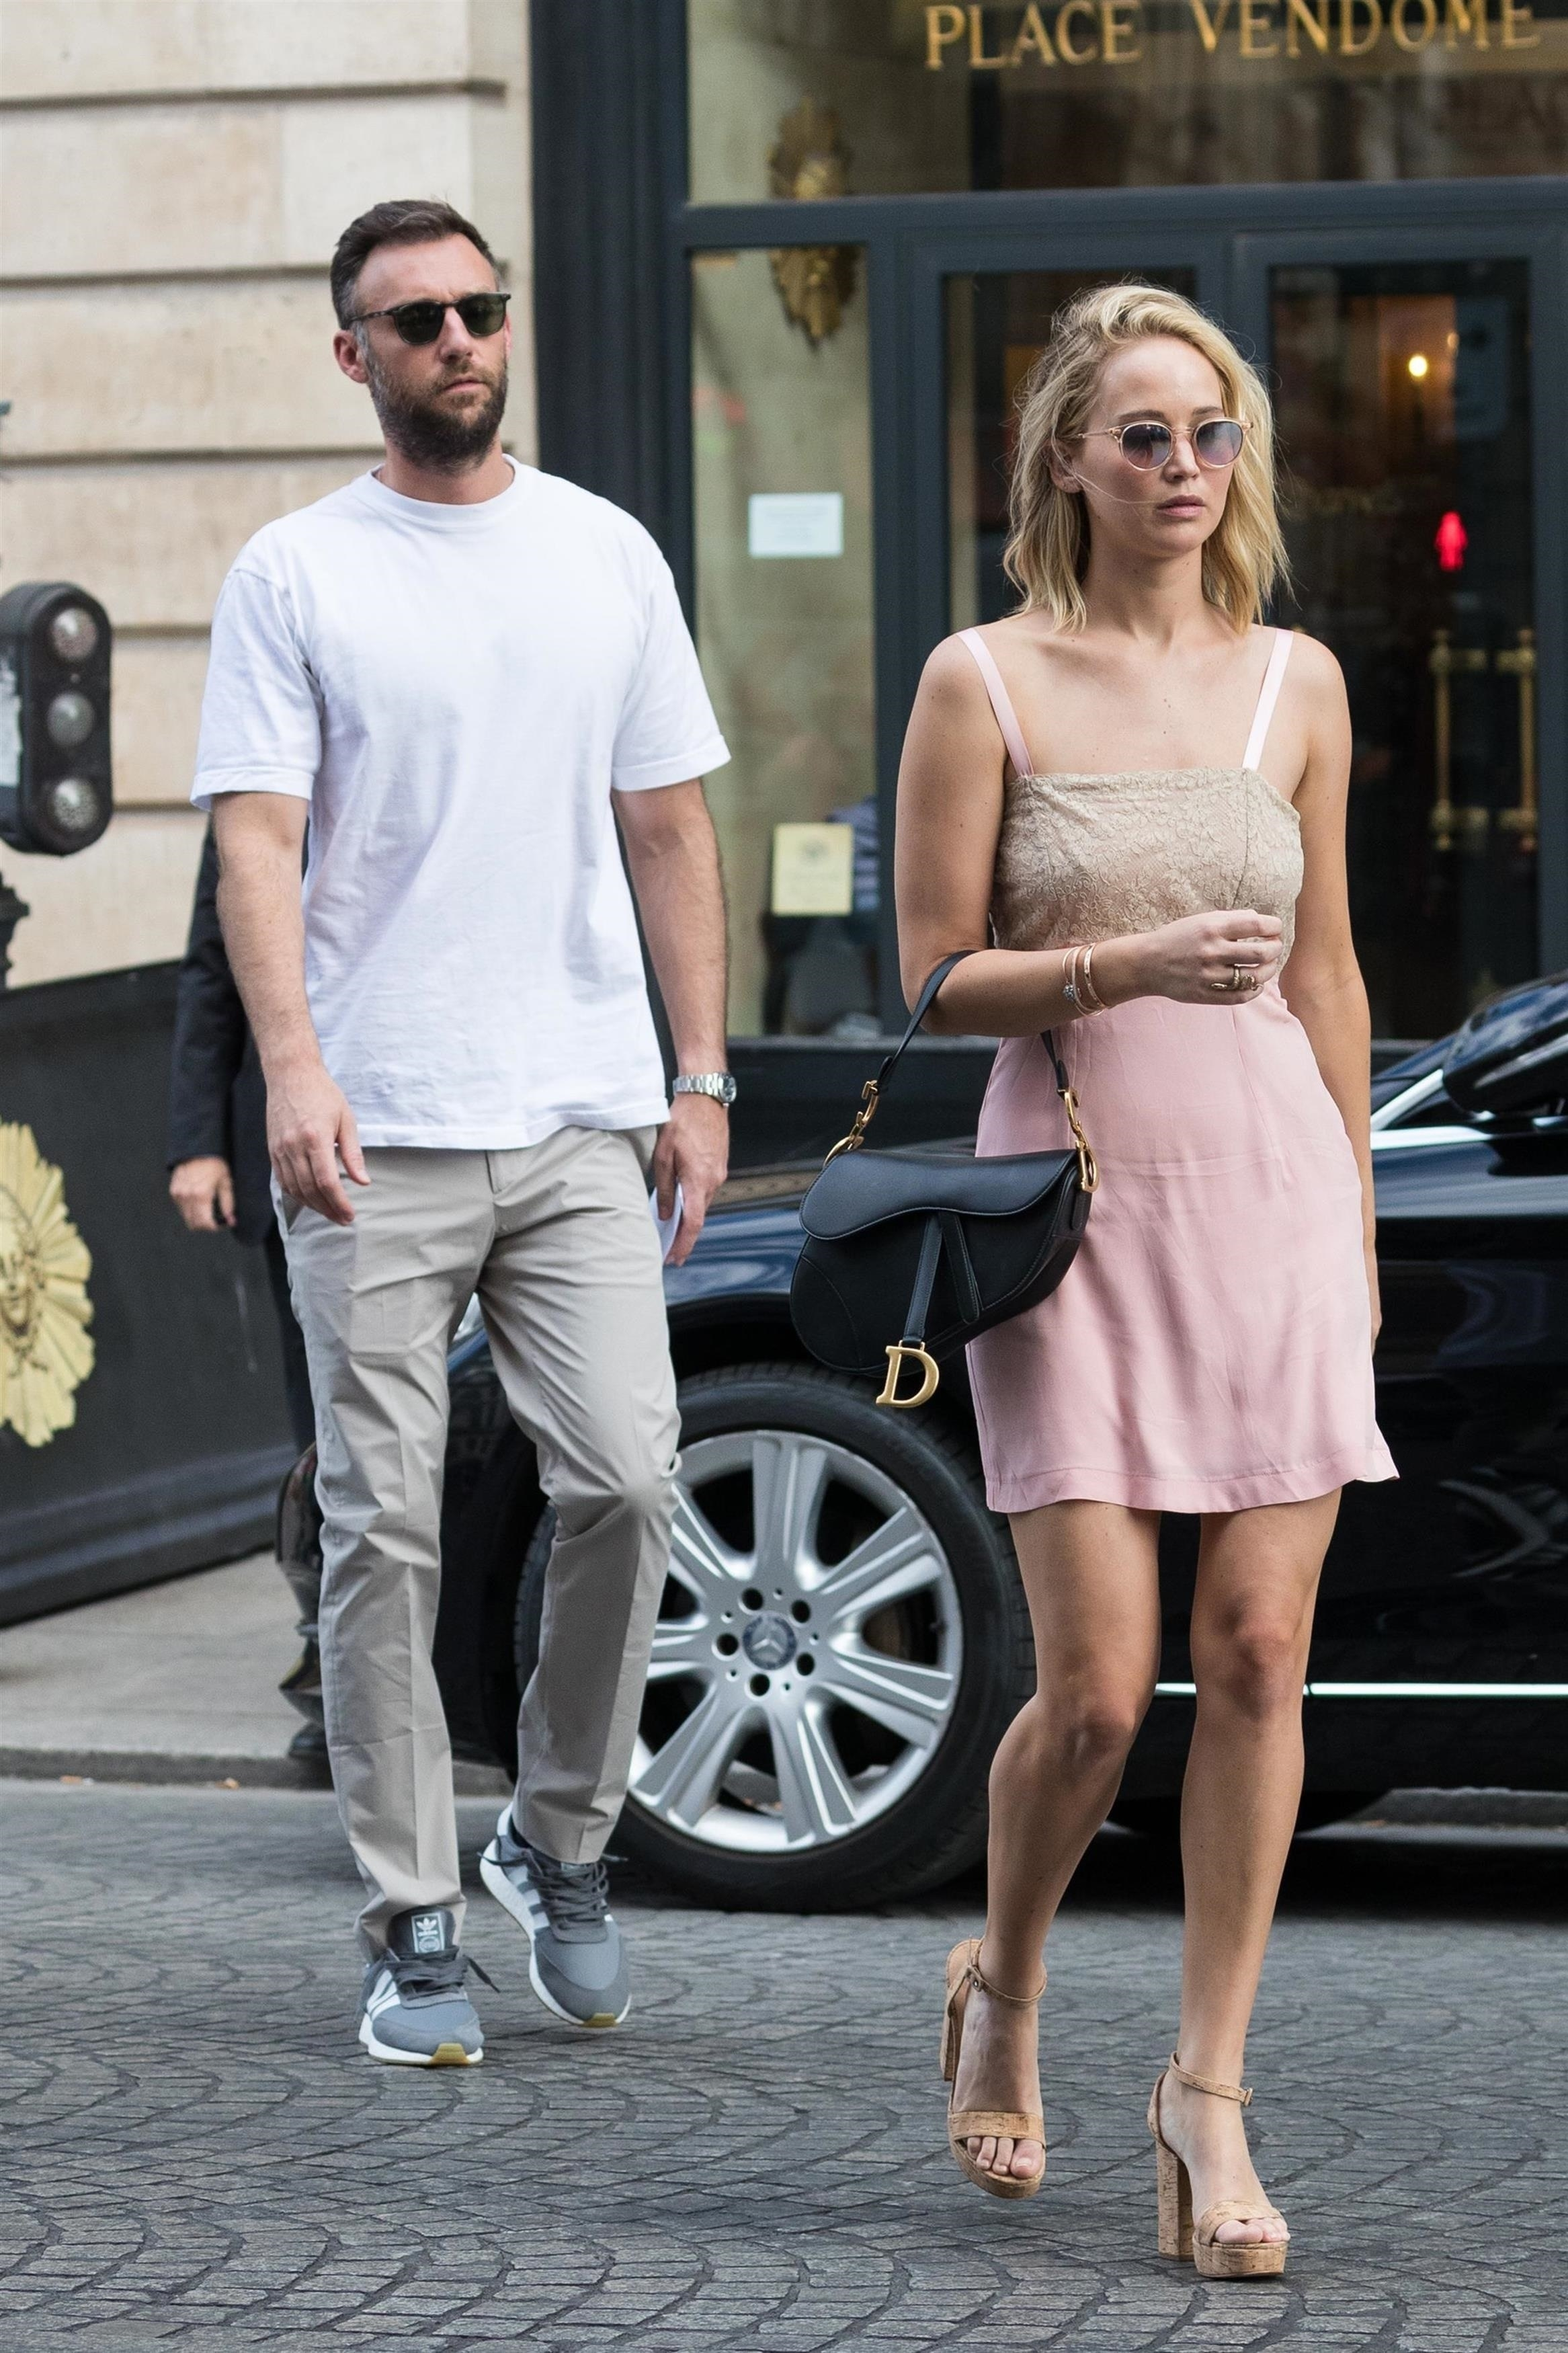 Jennifer Lawrence and her boyfriend Cooke Maroney stroll through Place Vedome in Paris on Aug. 8, 2018.